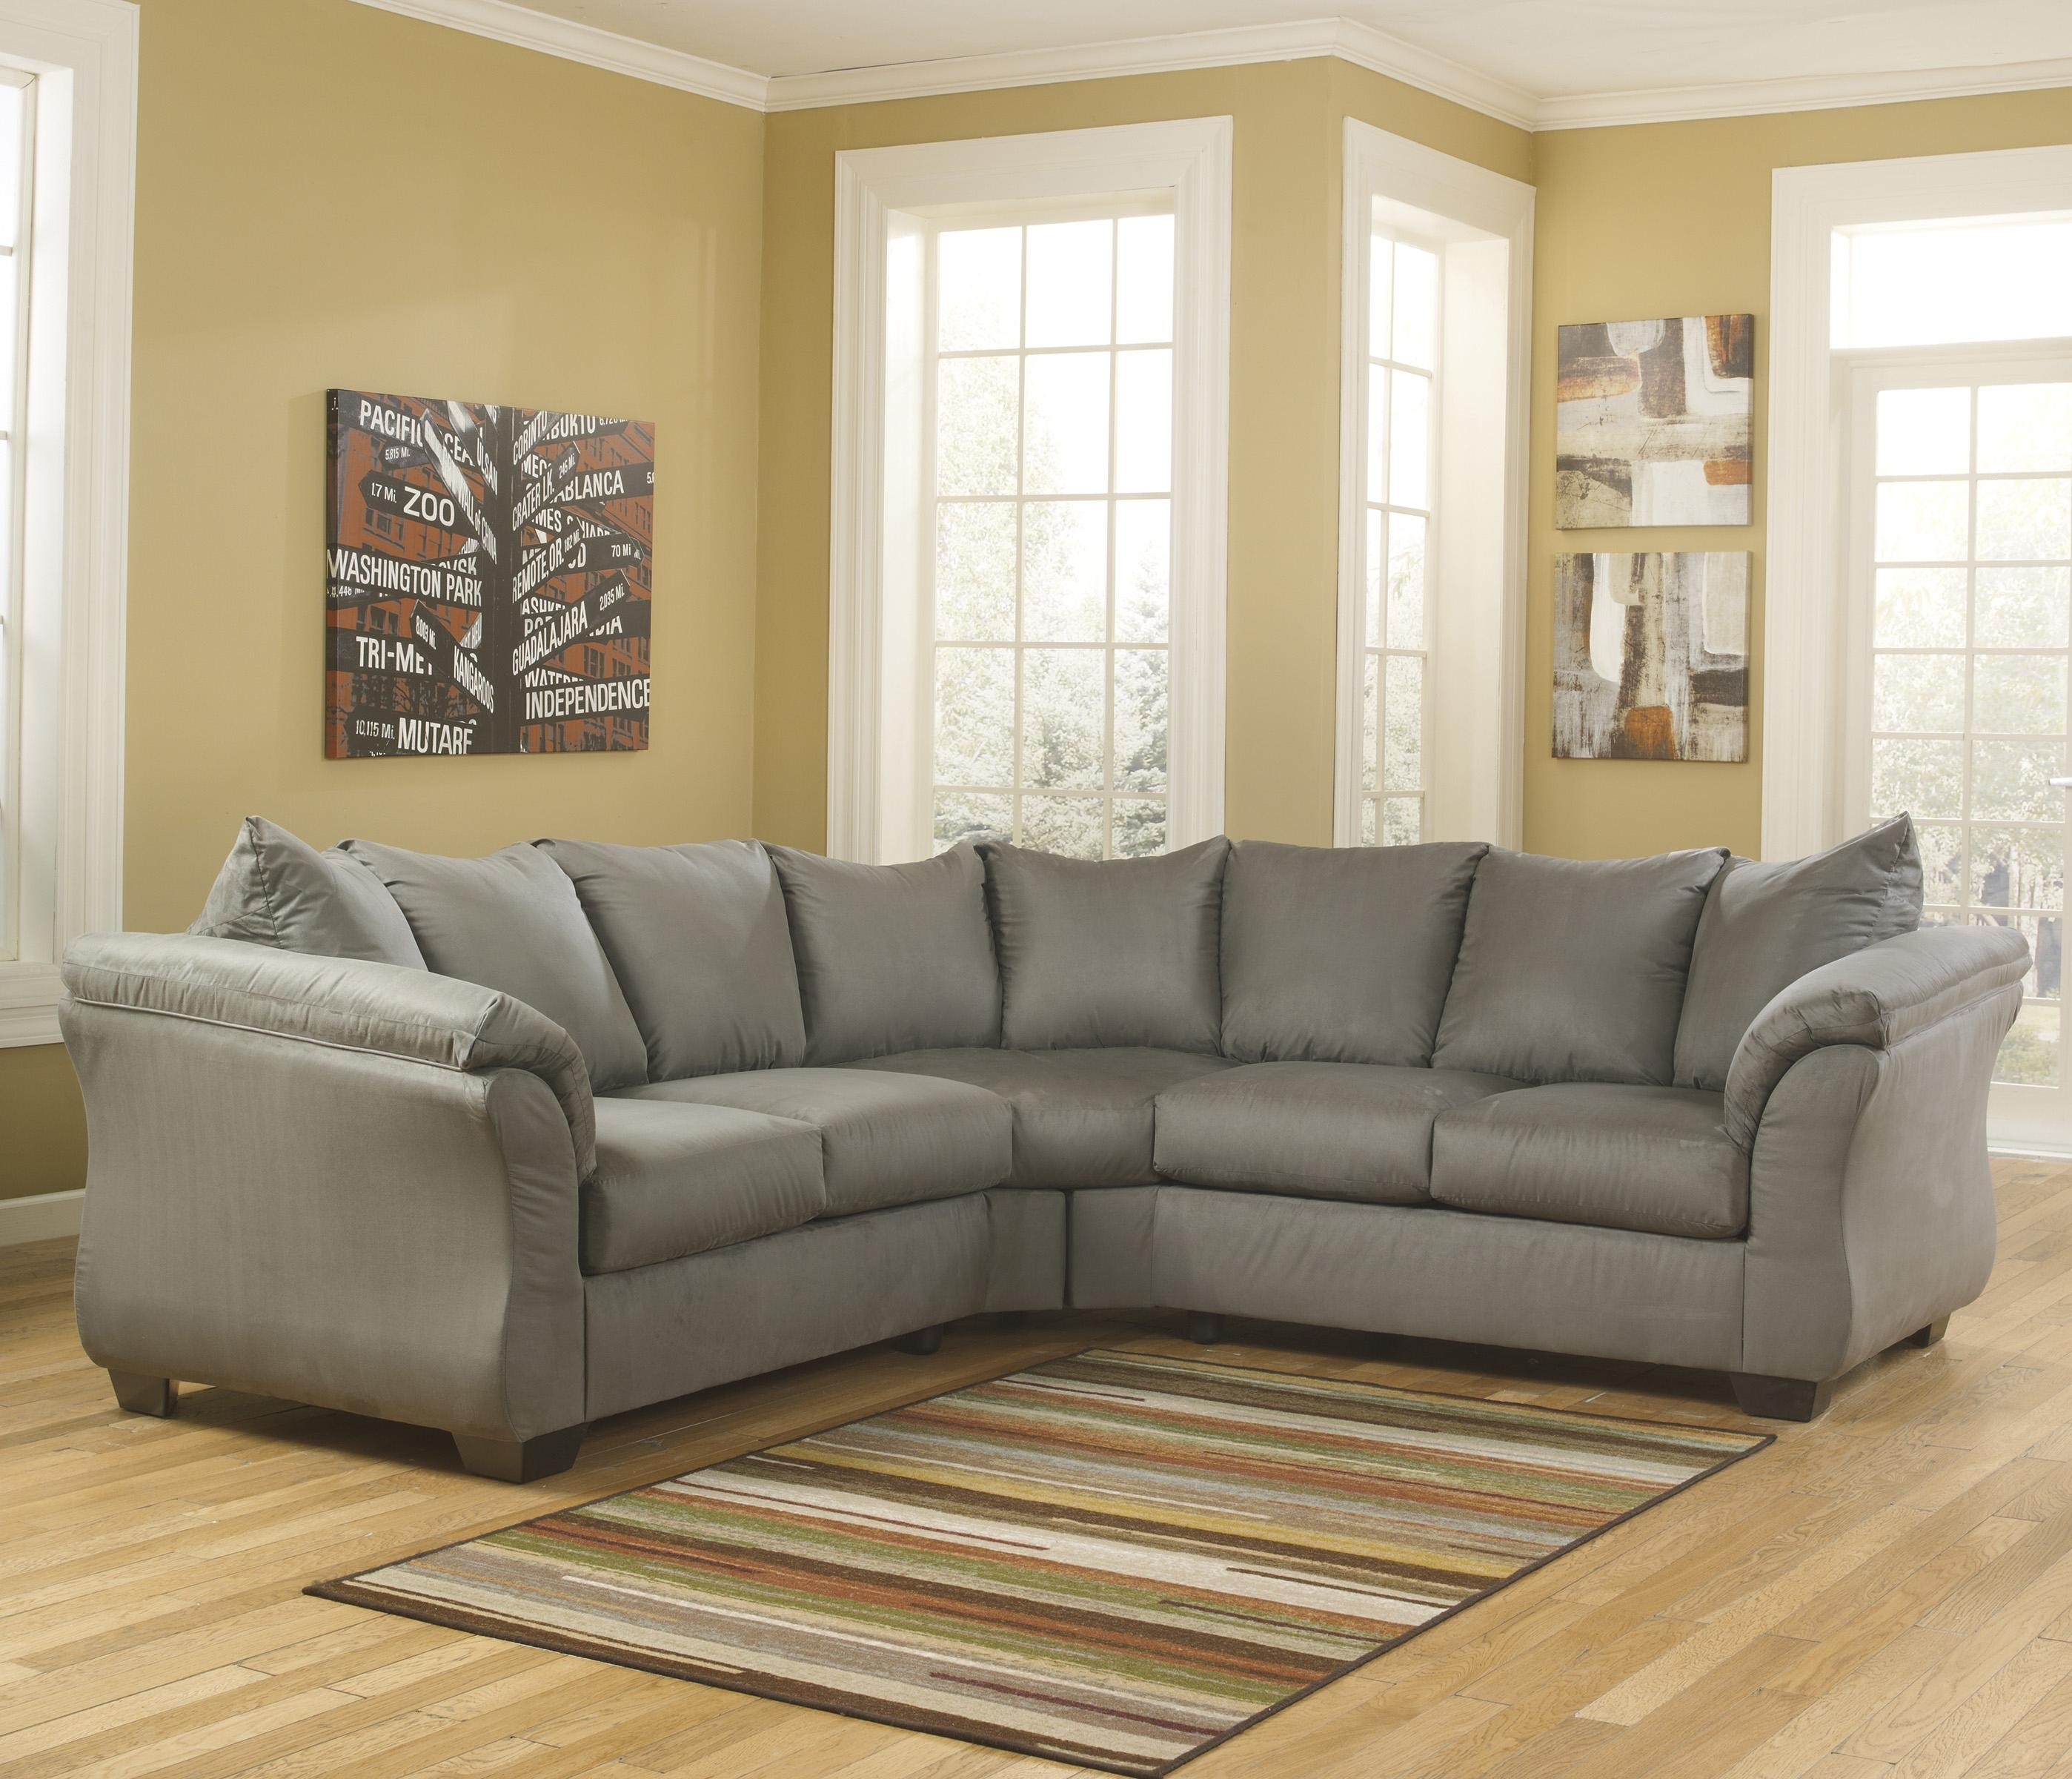 Signature Designashley Darcy – Cobblestone Contemporary In 102X102 Sectional Sofas (Image 10 of 10)